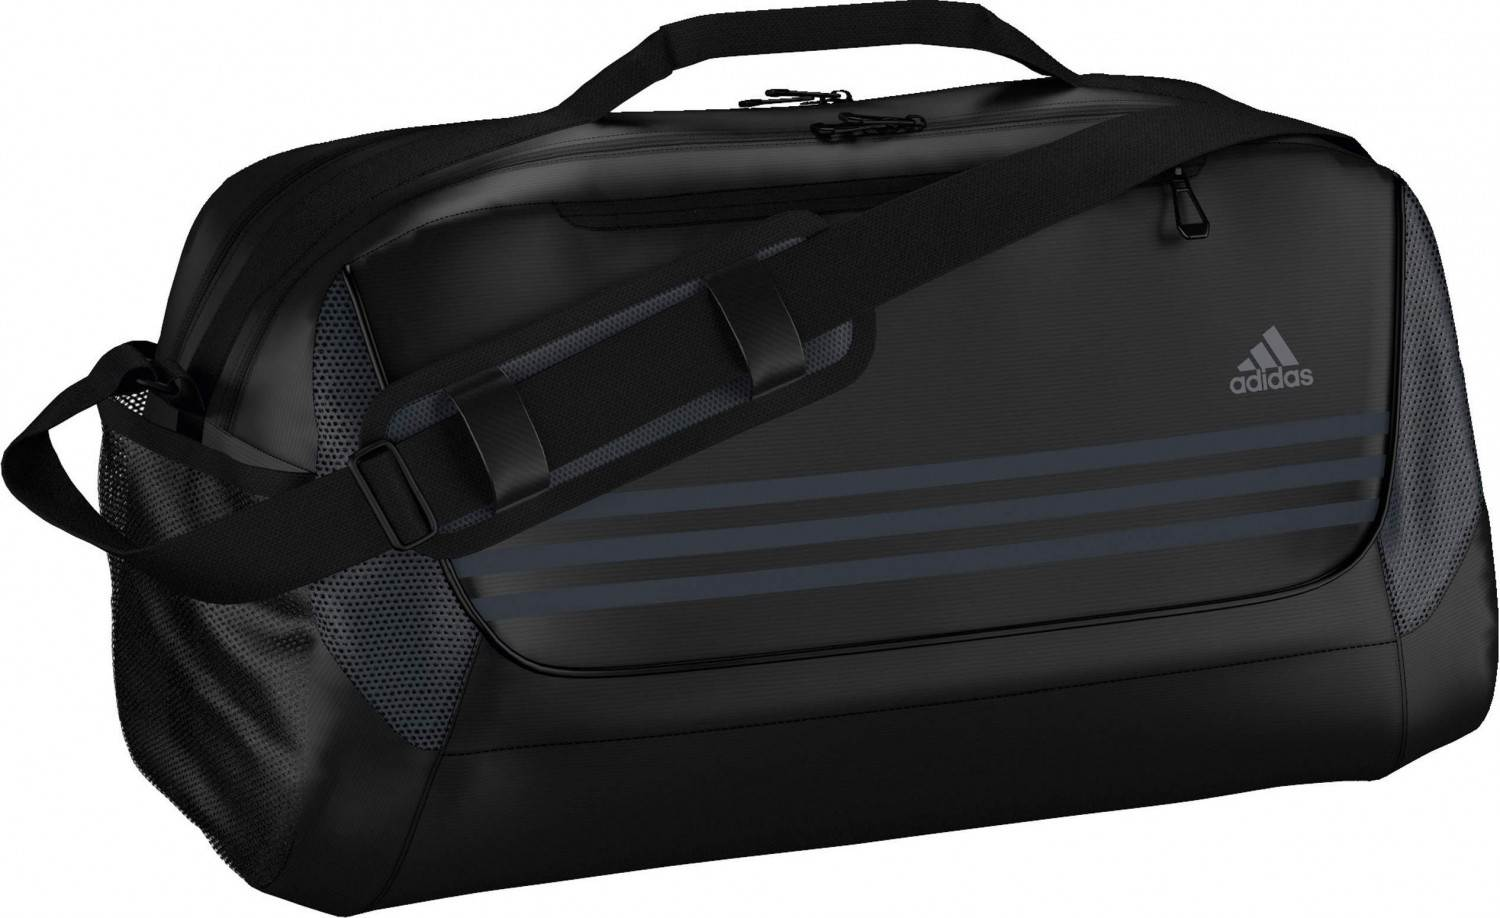 adidas-clima-teambag-m-tasche-farbe-black-night-shade-f13-carbon-met-s14-